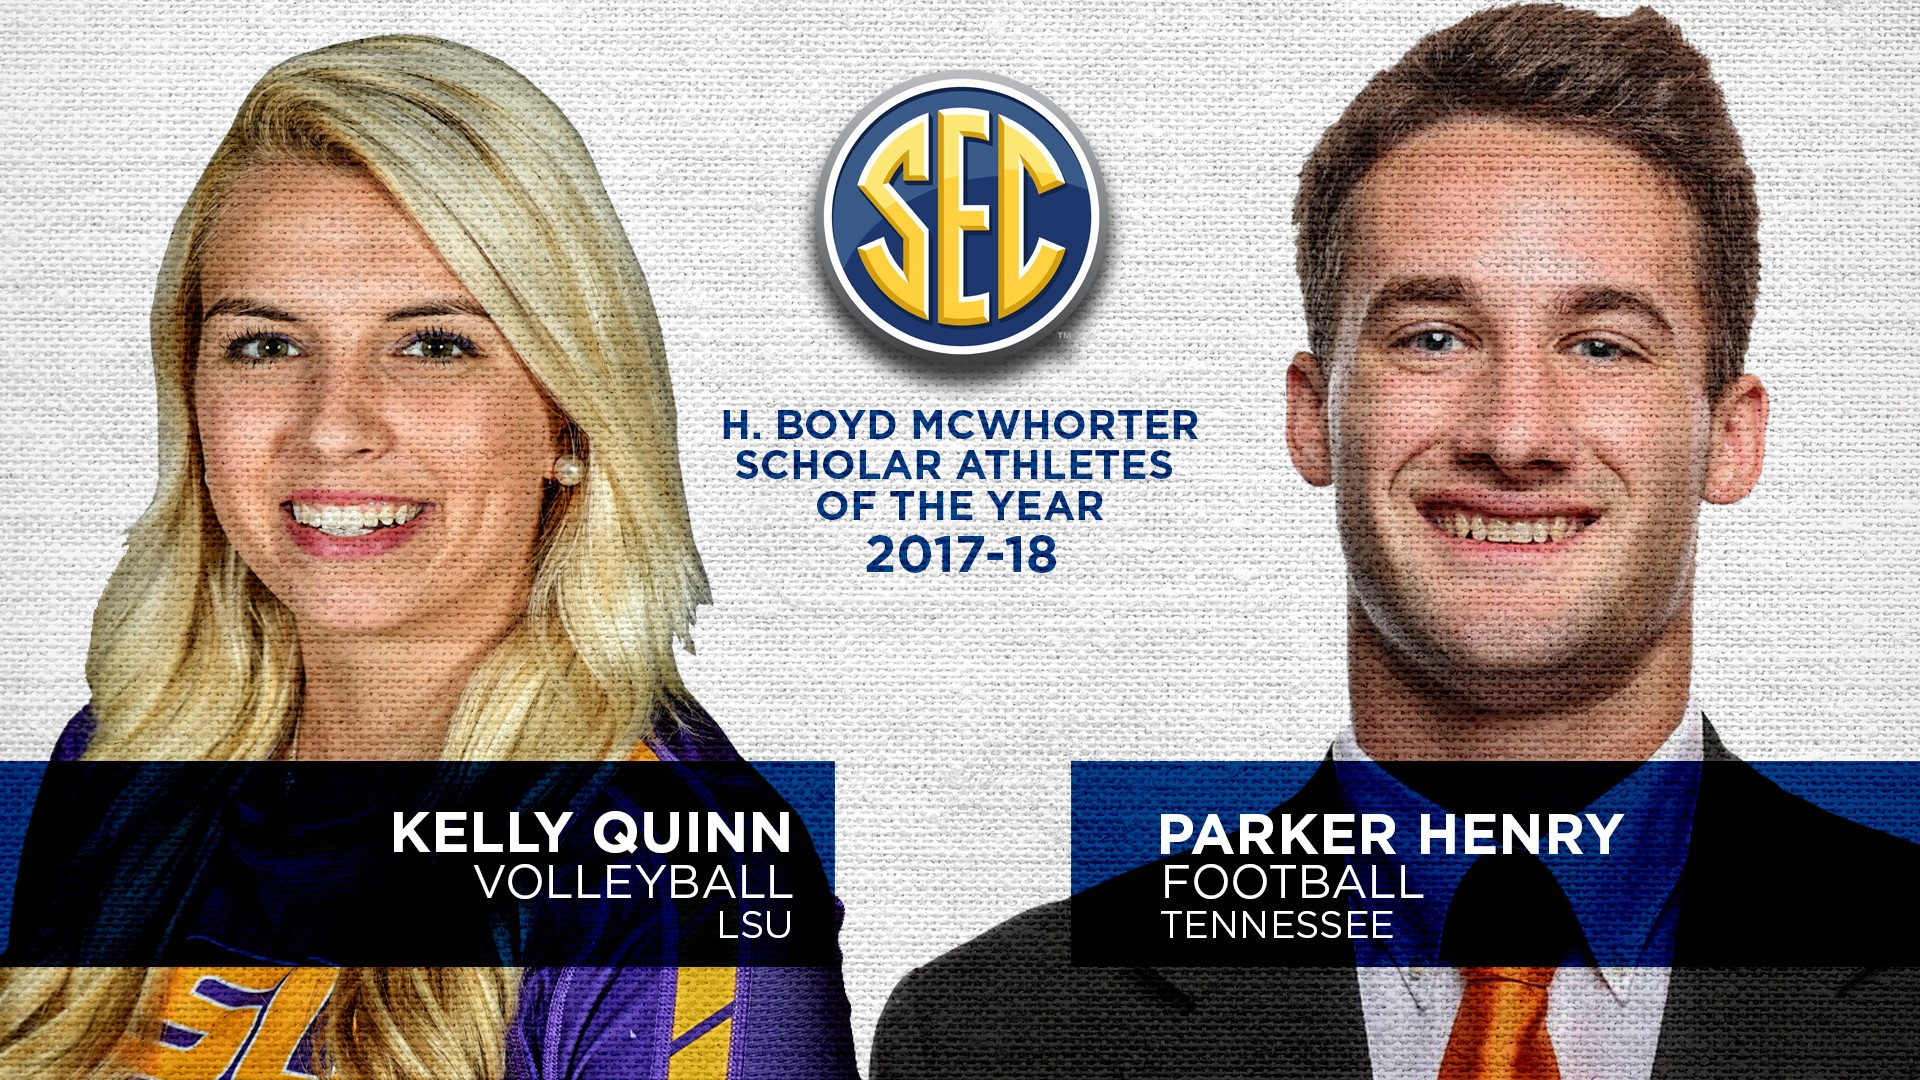 Tennessee's Henry and LSU's Quinn Named McWhorter Award Winners